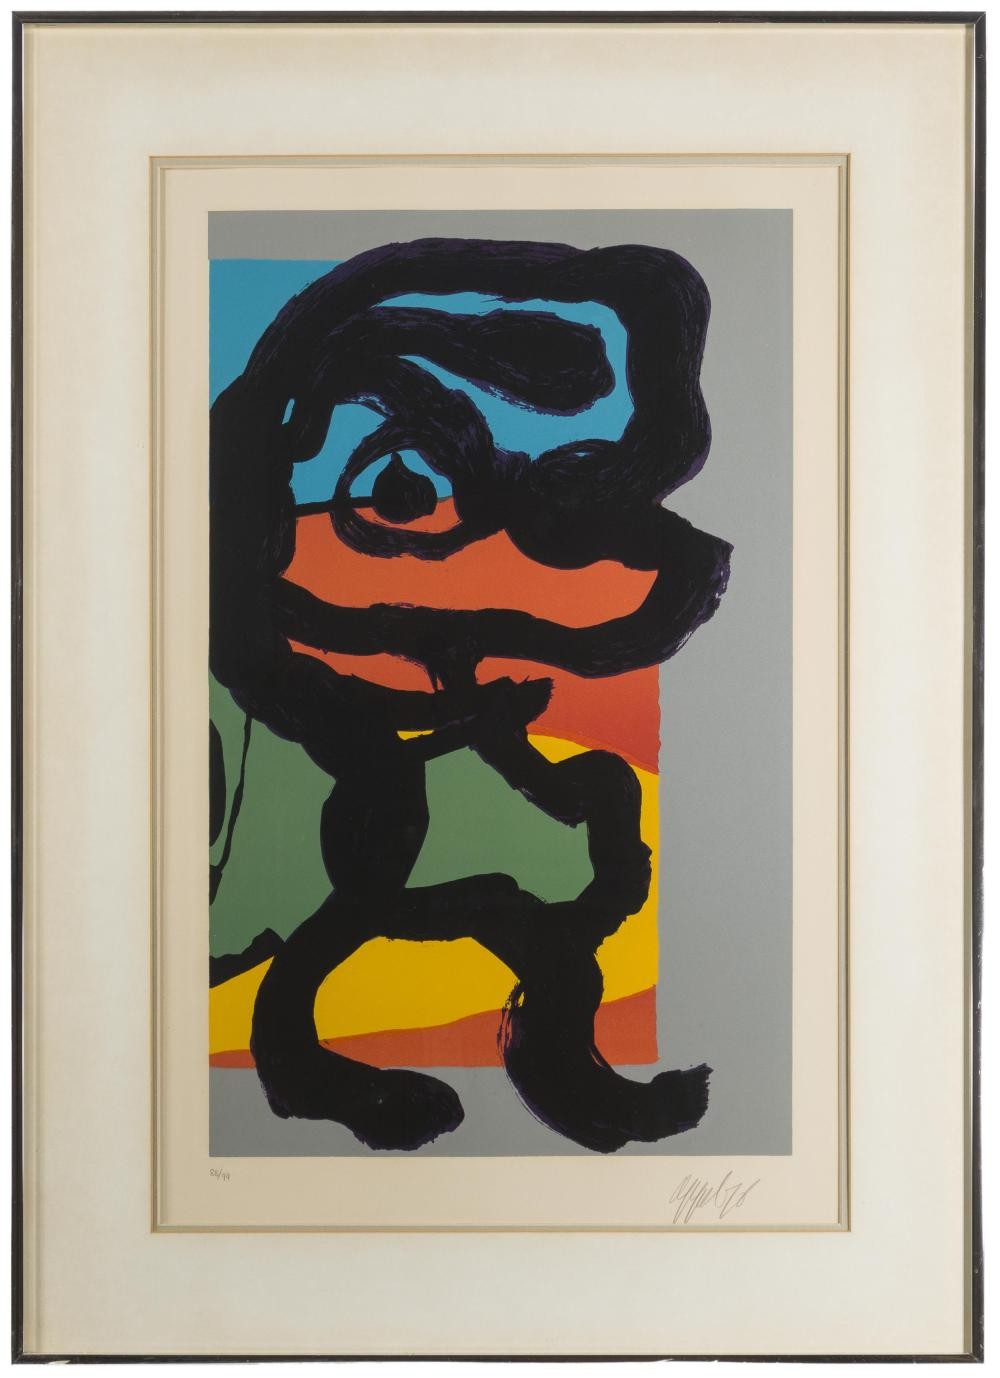 Karel Christiaan Appel, (1921-2006 Dutch), Untitled (Abstract figure), 1976, Color lithograph on paper under glass, Sight: 26